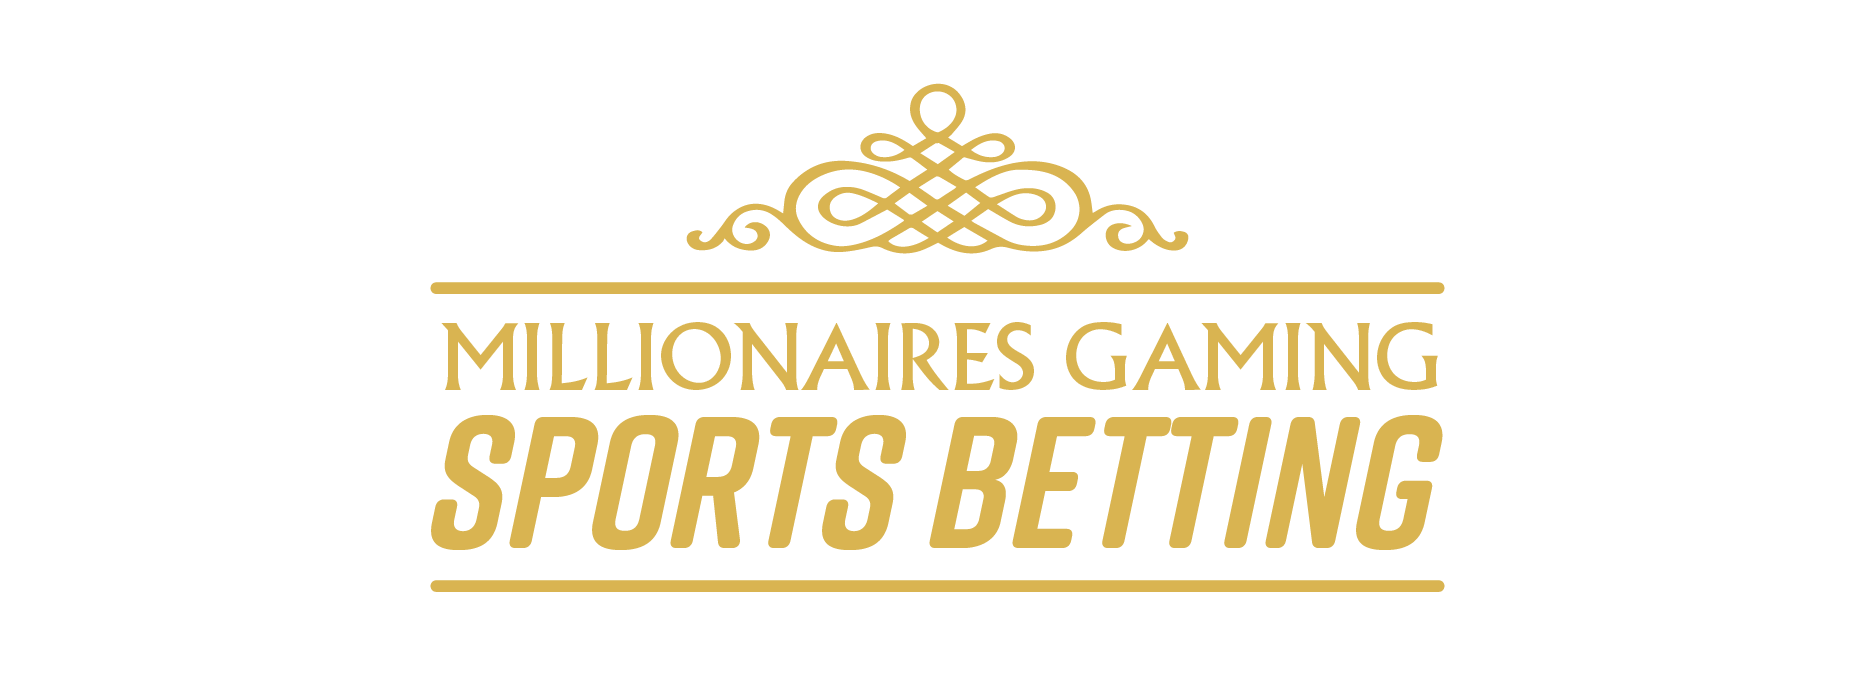 Millionaires Gaming Sports Betting